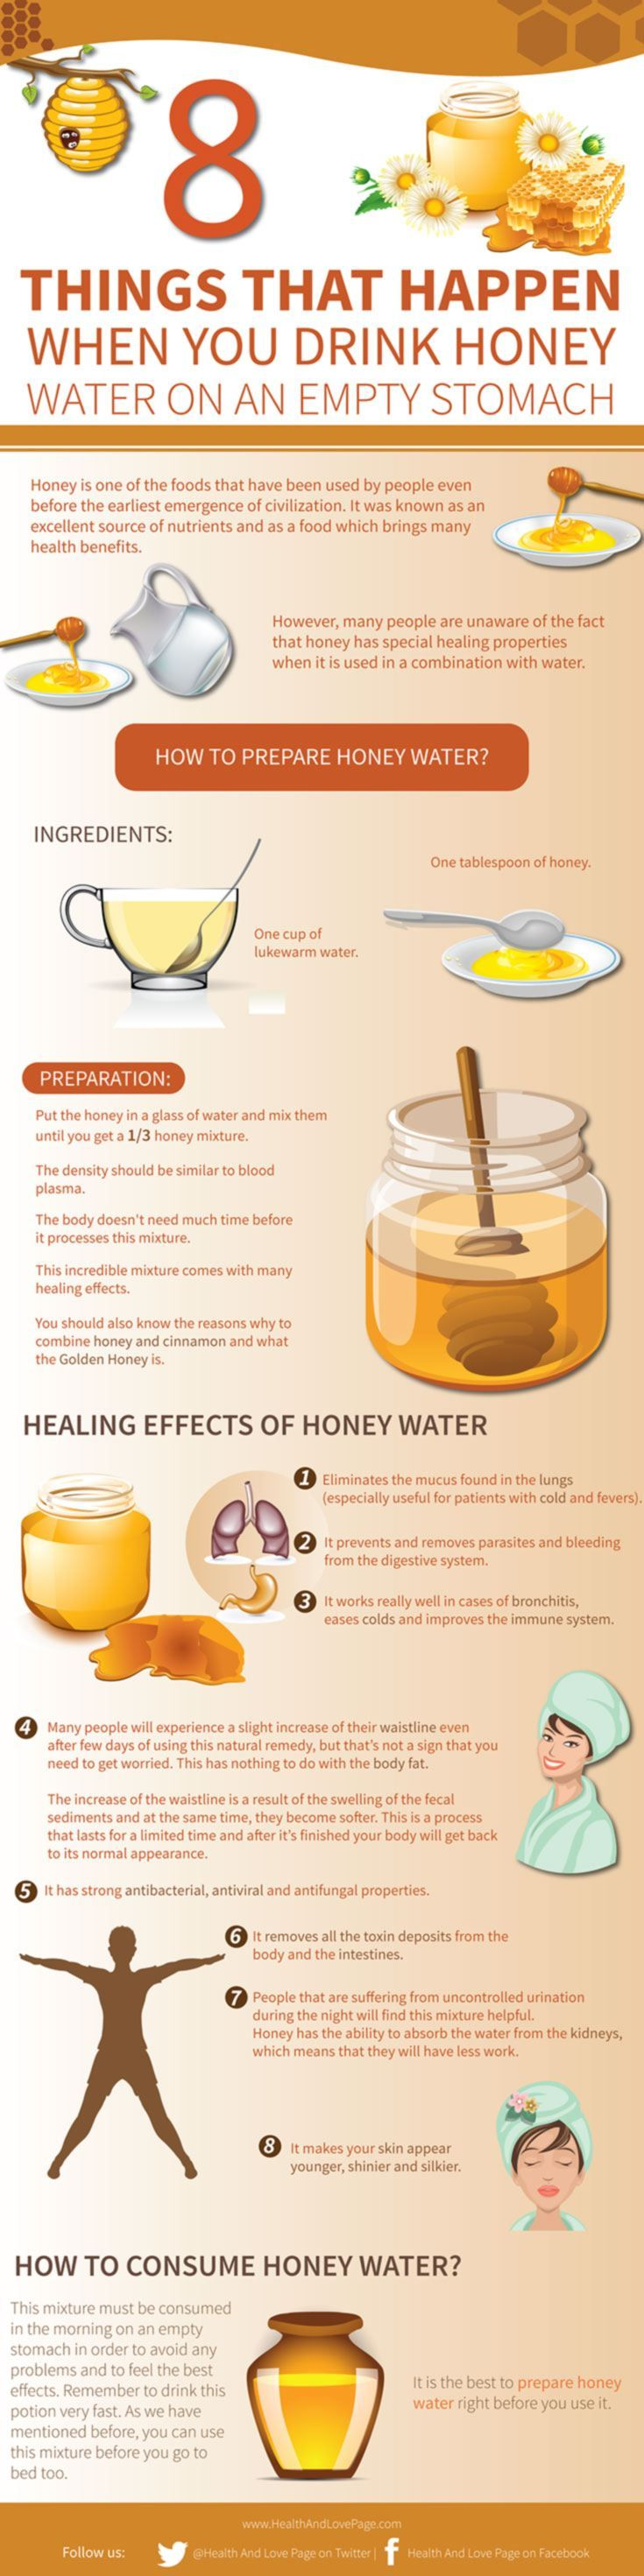 Cache 1 image 500x 9df78eab33525d08d6e5fb8d27136e95 a r arena replique - 8 Things That Happen When You Drink Honey Water On An Empty Stomach